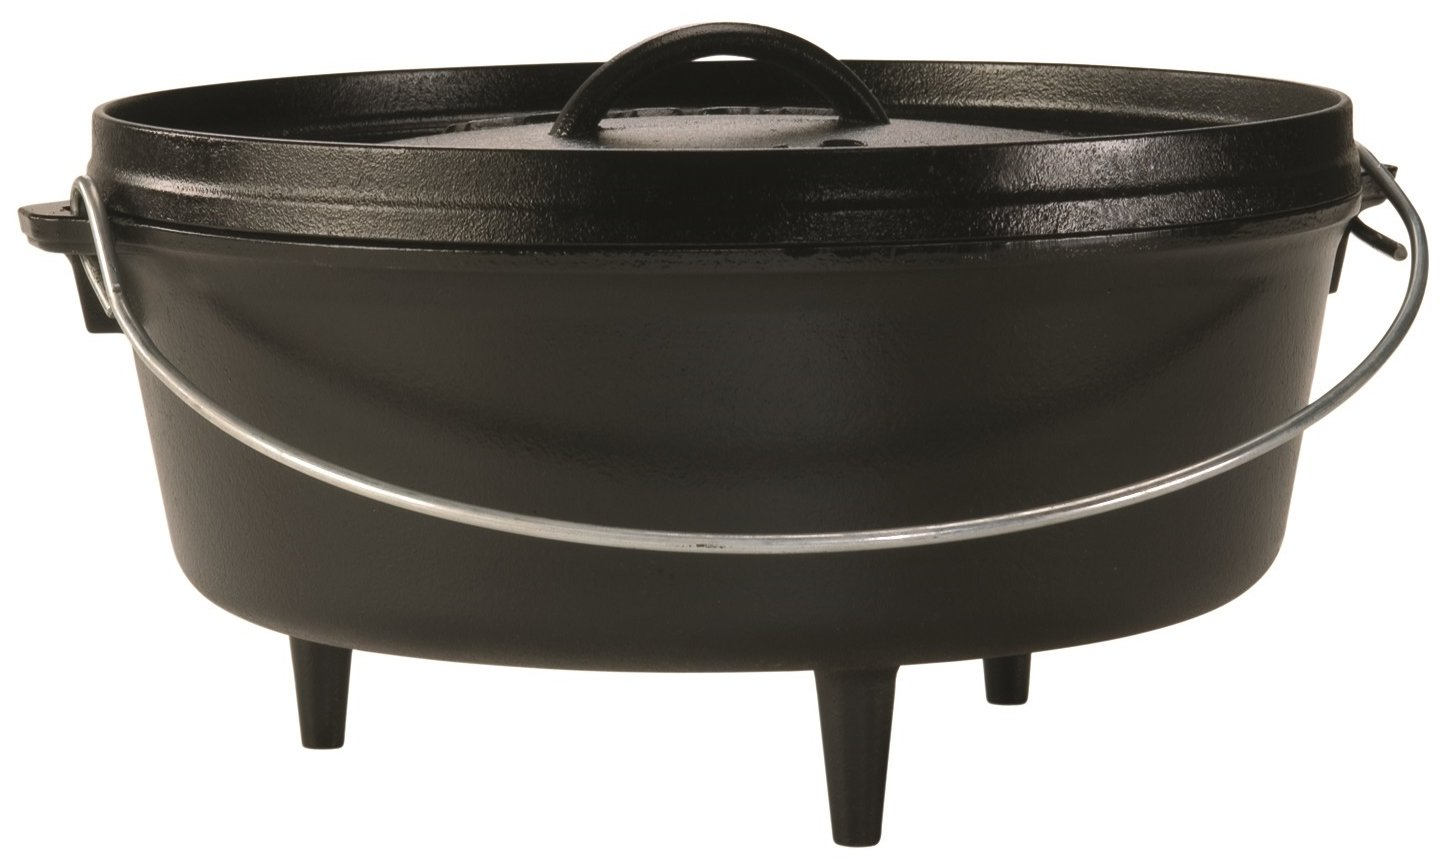 Lodge 6 Quart Camp Dutch Oven. 12 Inch Pre Seasoned Cast Iron Pot and Lid with Handle for Camp Cooking